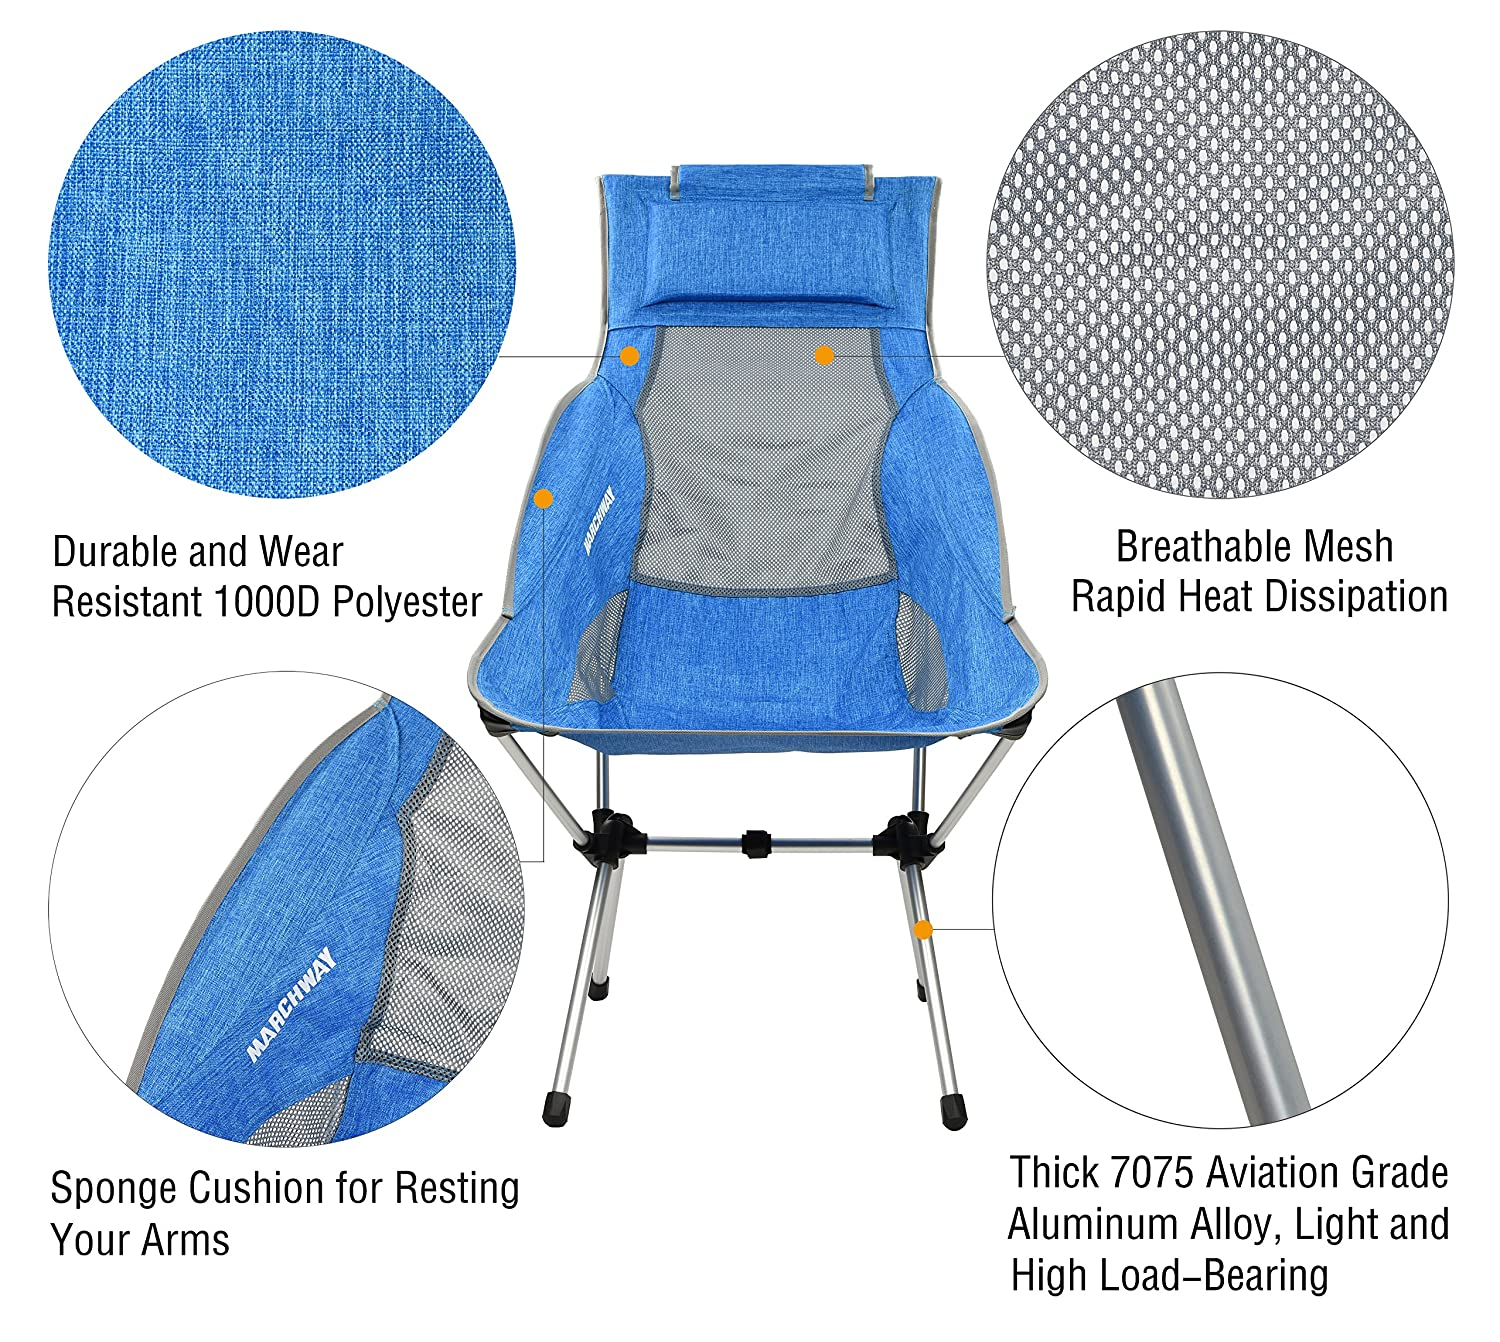 Amazon.com : MARCHWAY Portable Lightweight Folding High Back Camping Chair  With Headrest For Outdoor Travel, Sport, Beach, Party, Hiking, Backpacking  (Light ...